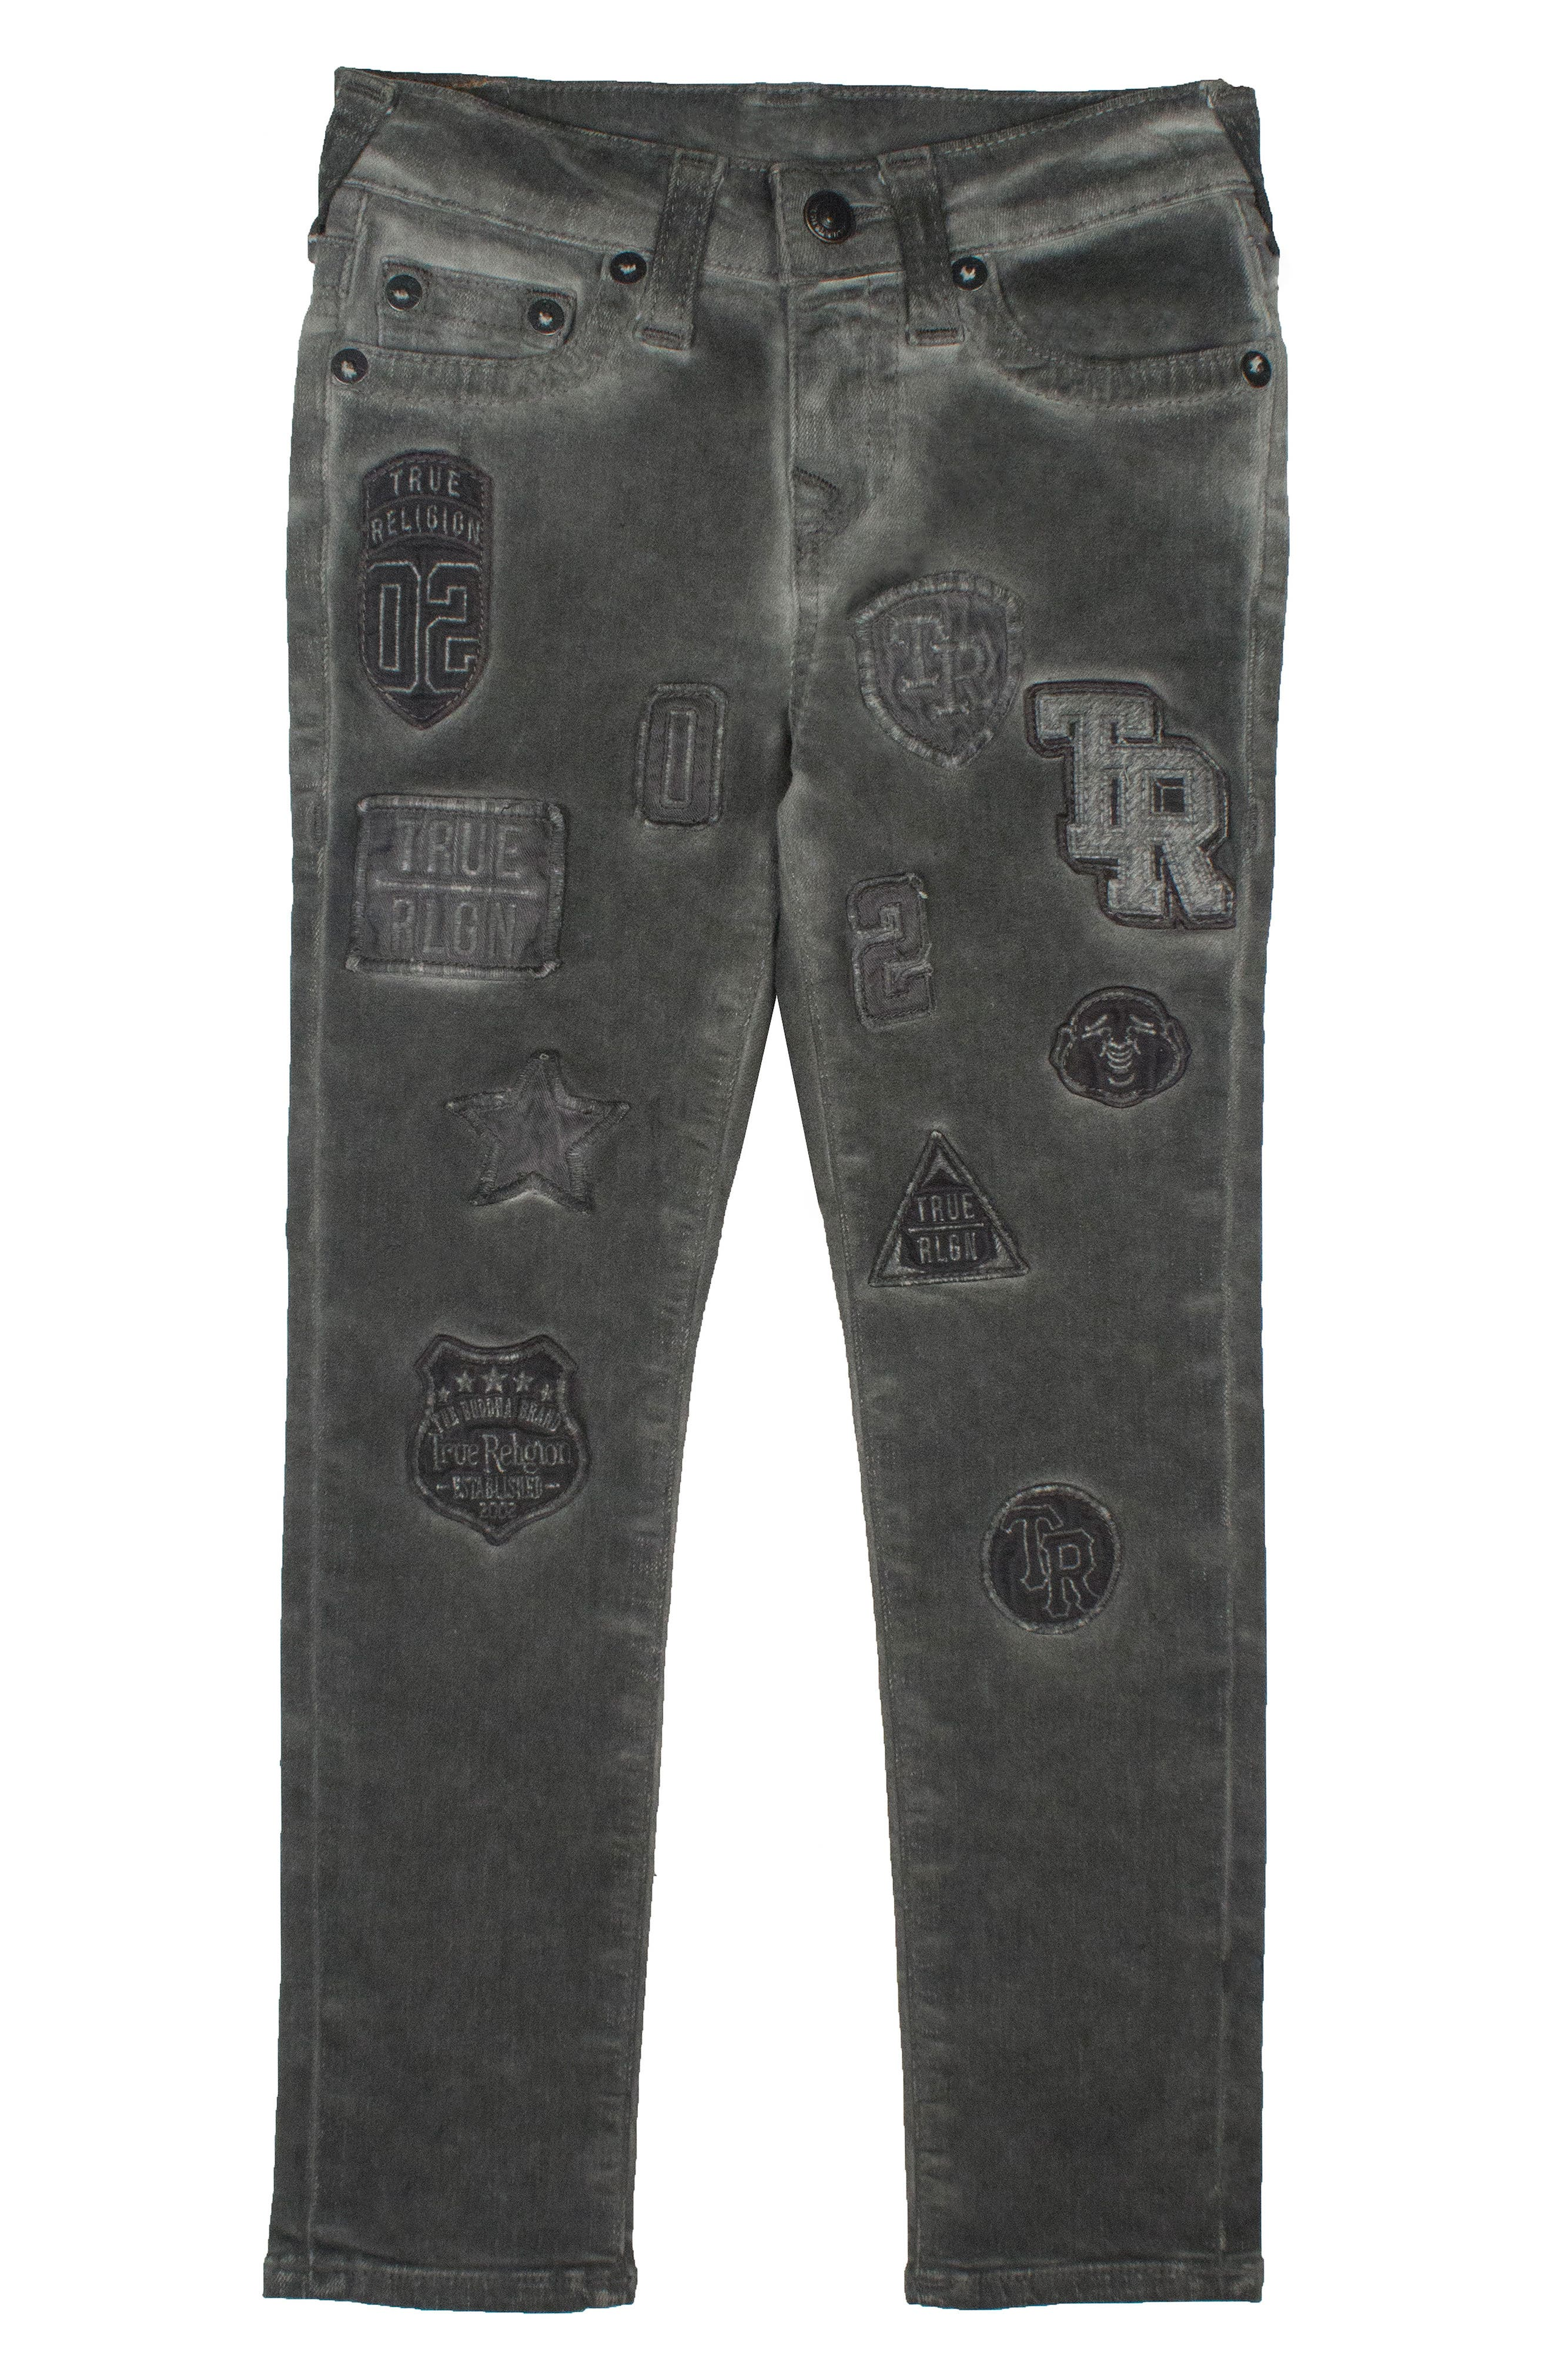 Rocco Single End Jeans,                             Main thumbnail 1, color,                             Grey Patched